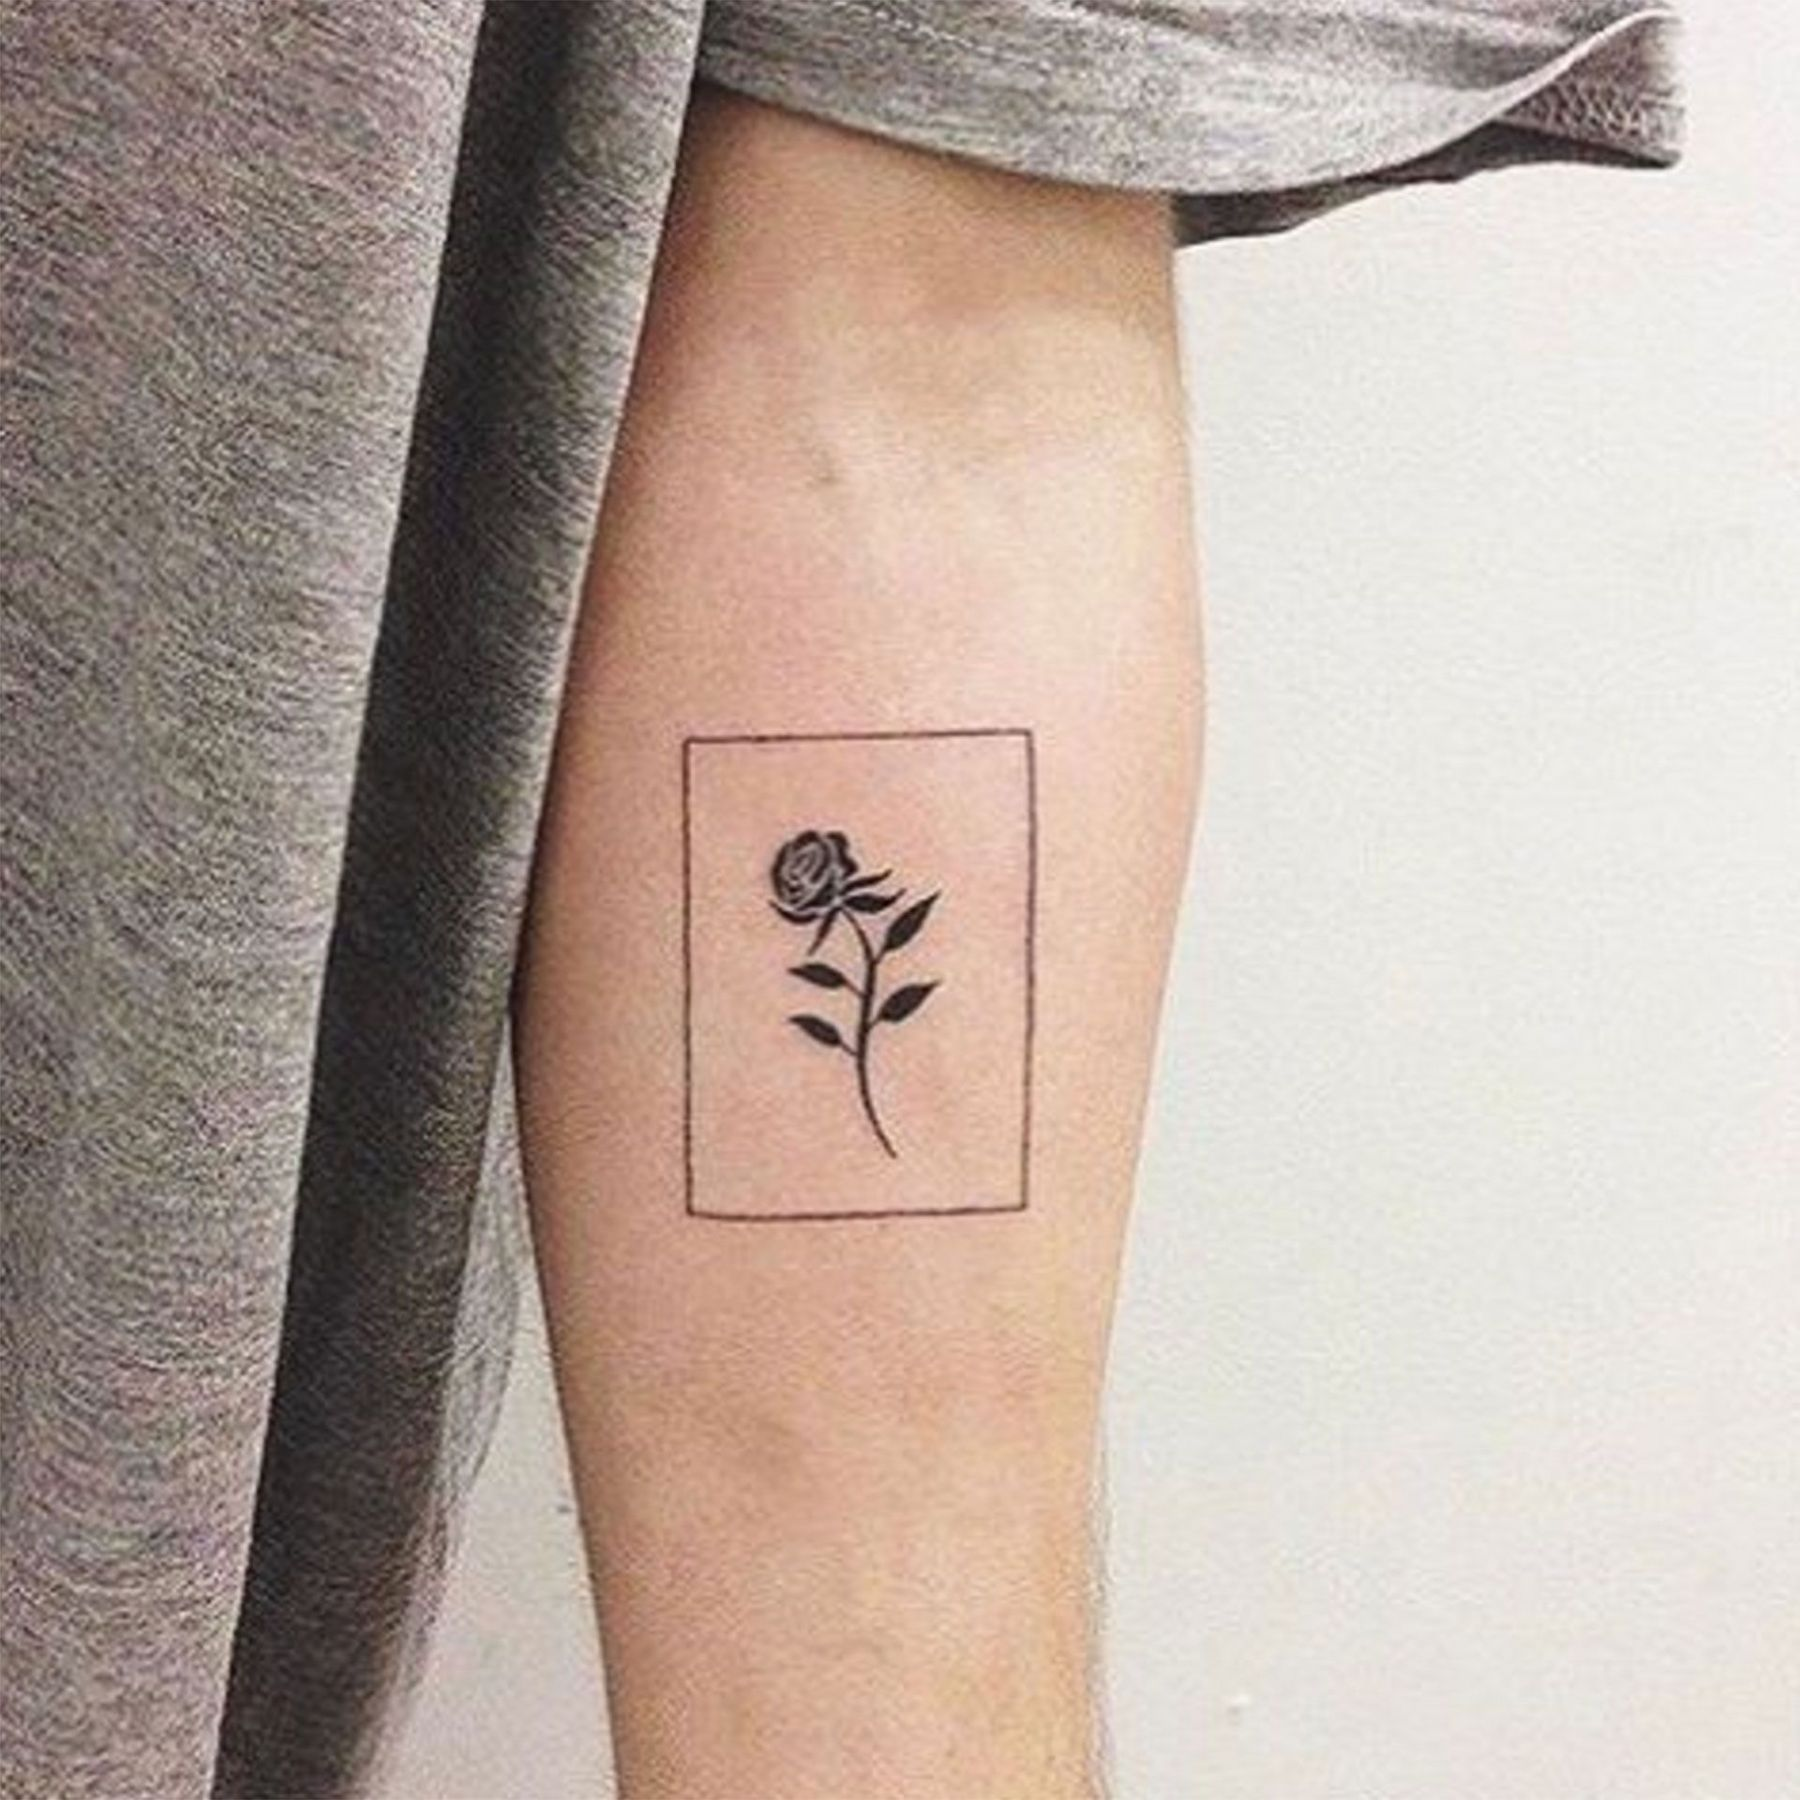 Small And Simple Tattoo: Thinking Of Getting Inked? Here's Our Round-up Of The Best